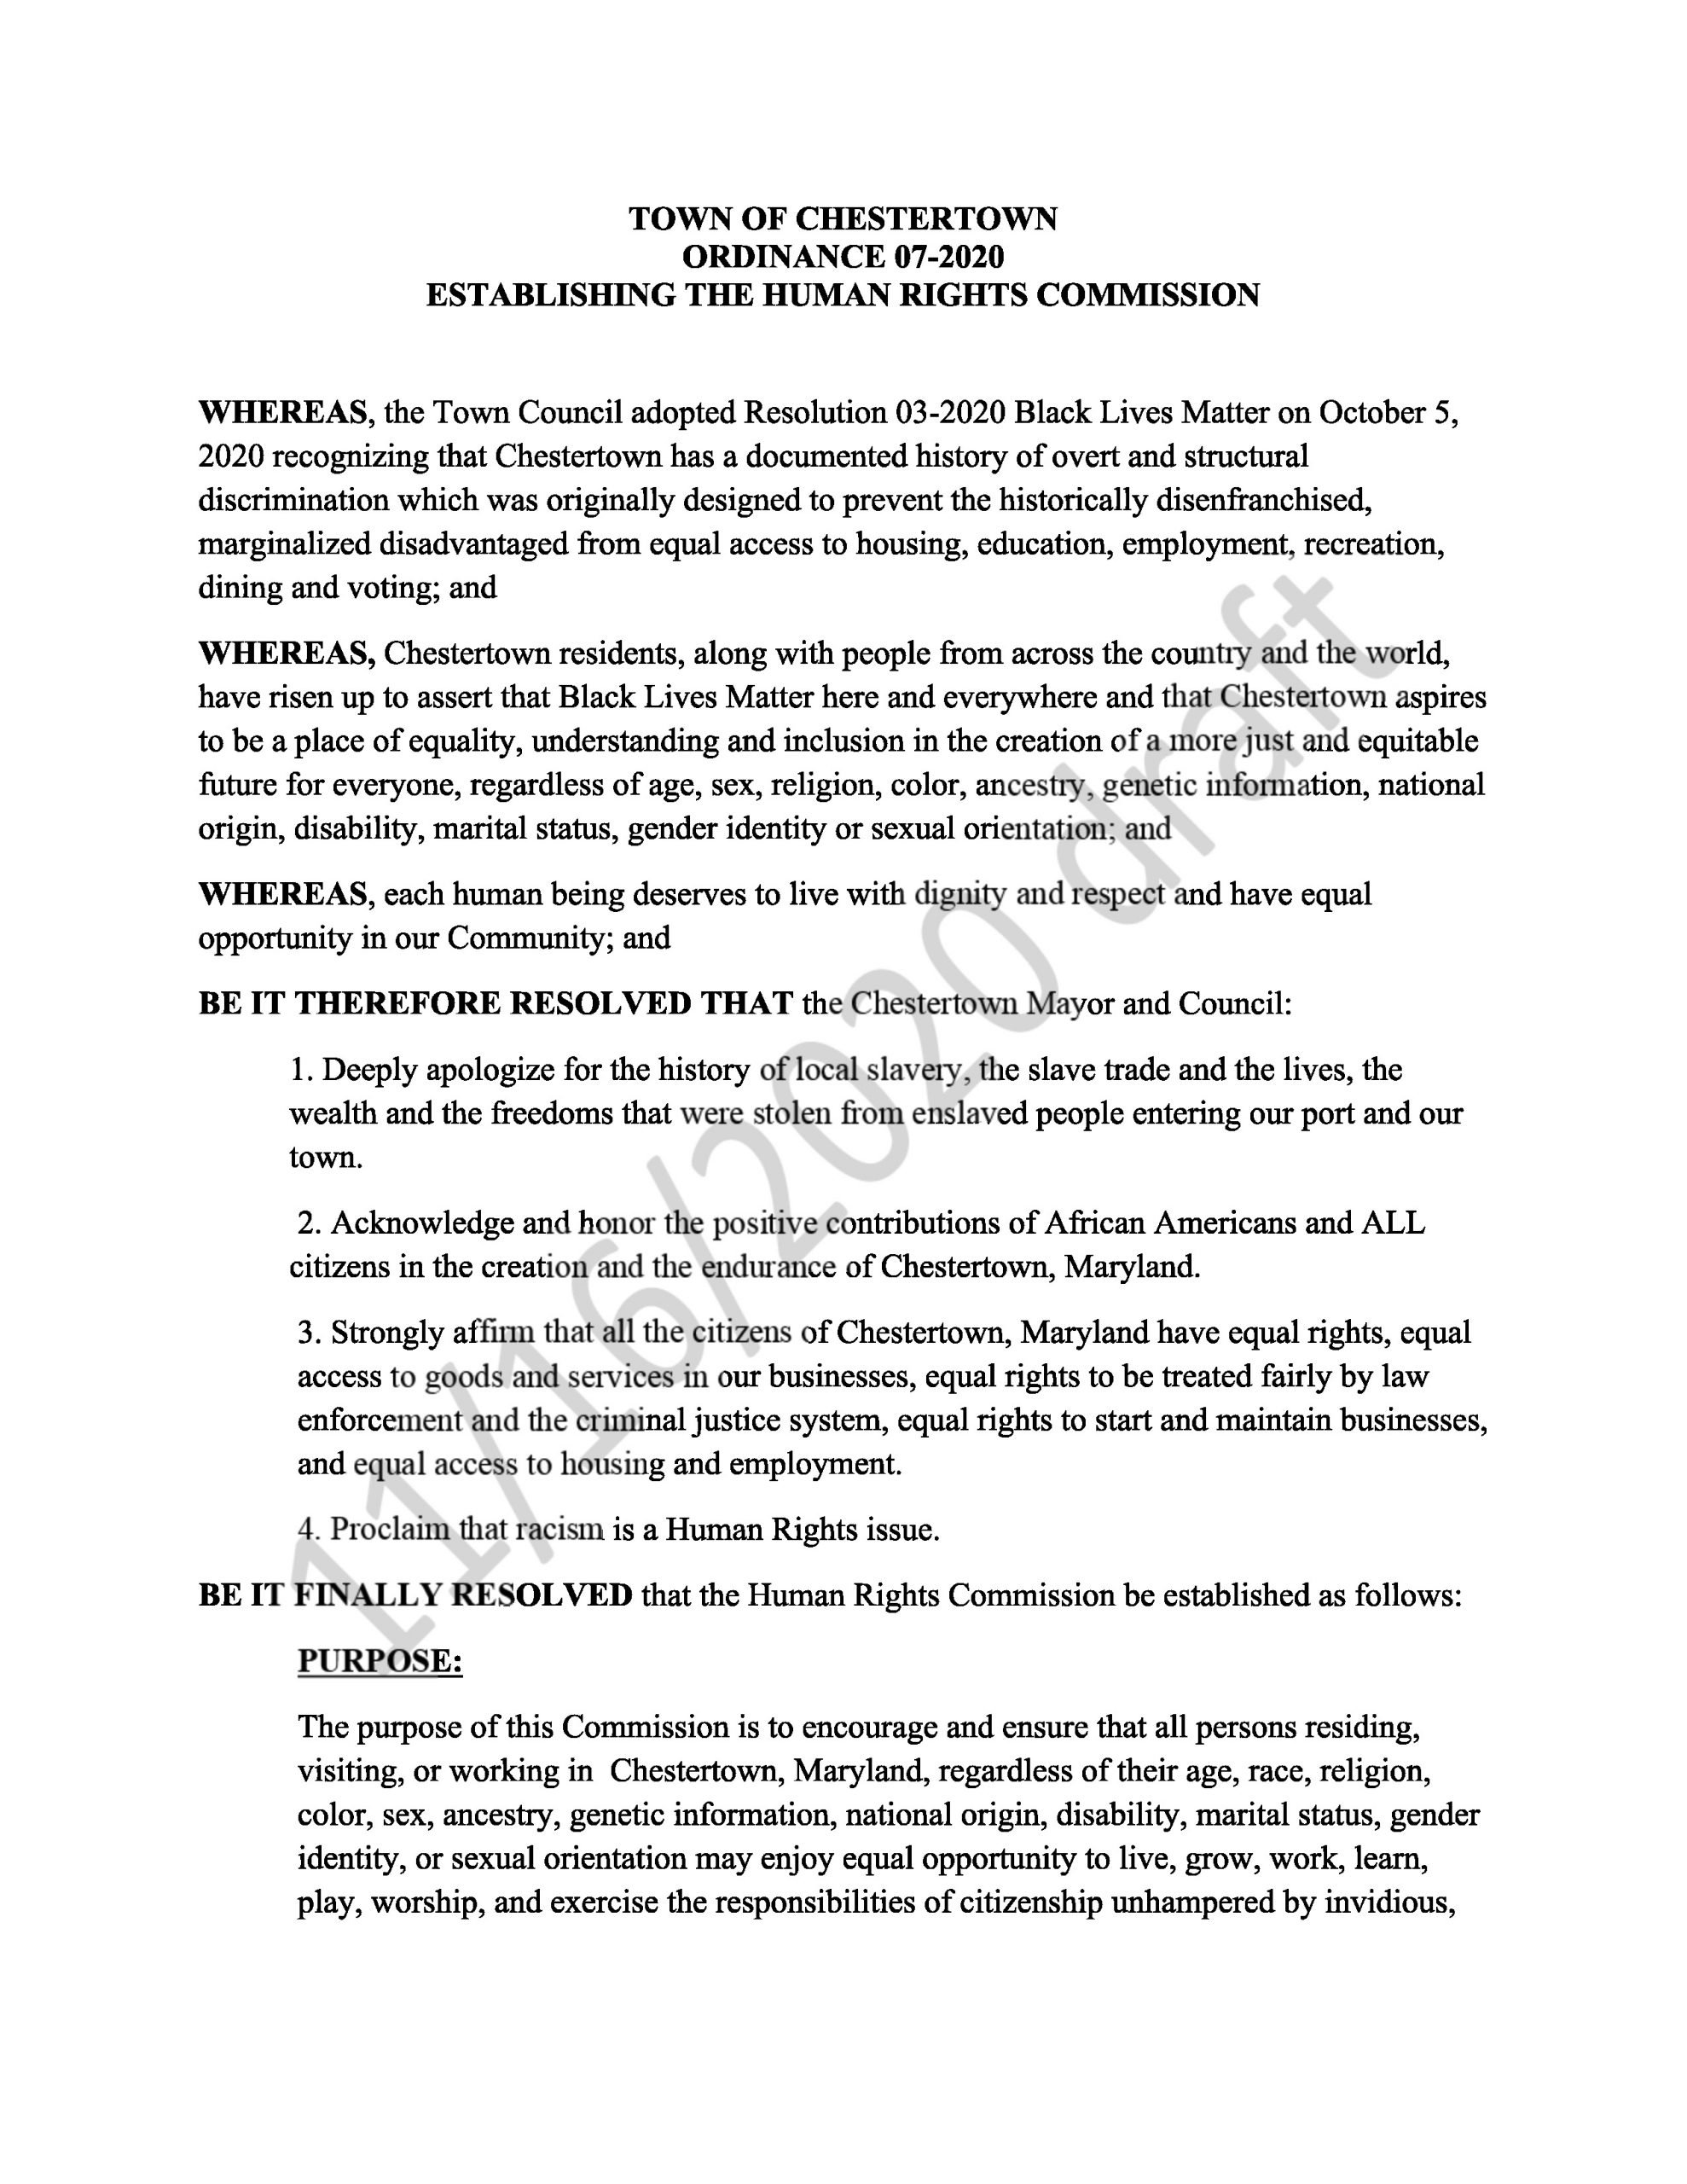 Human Rights Resolution Page 1